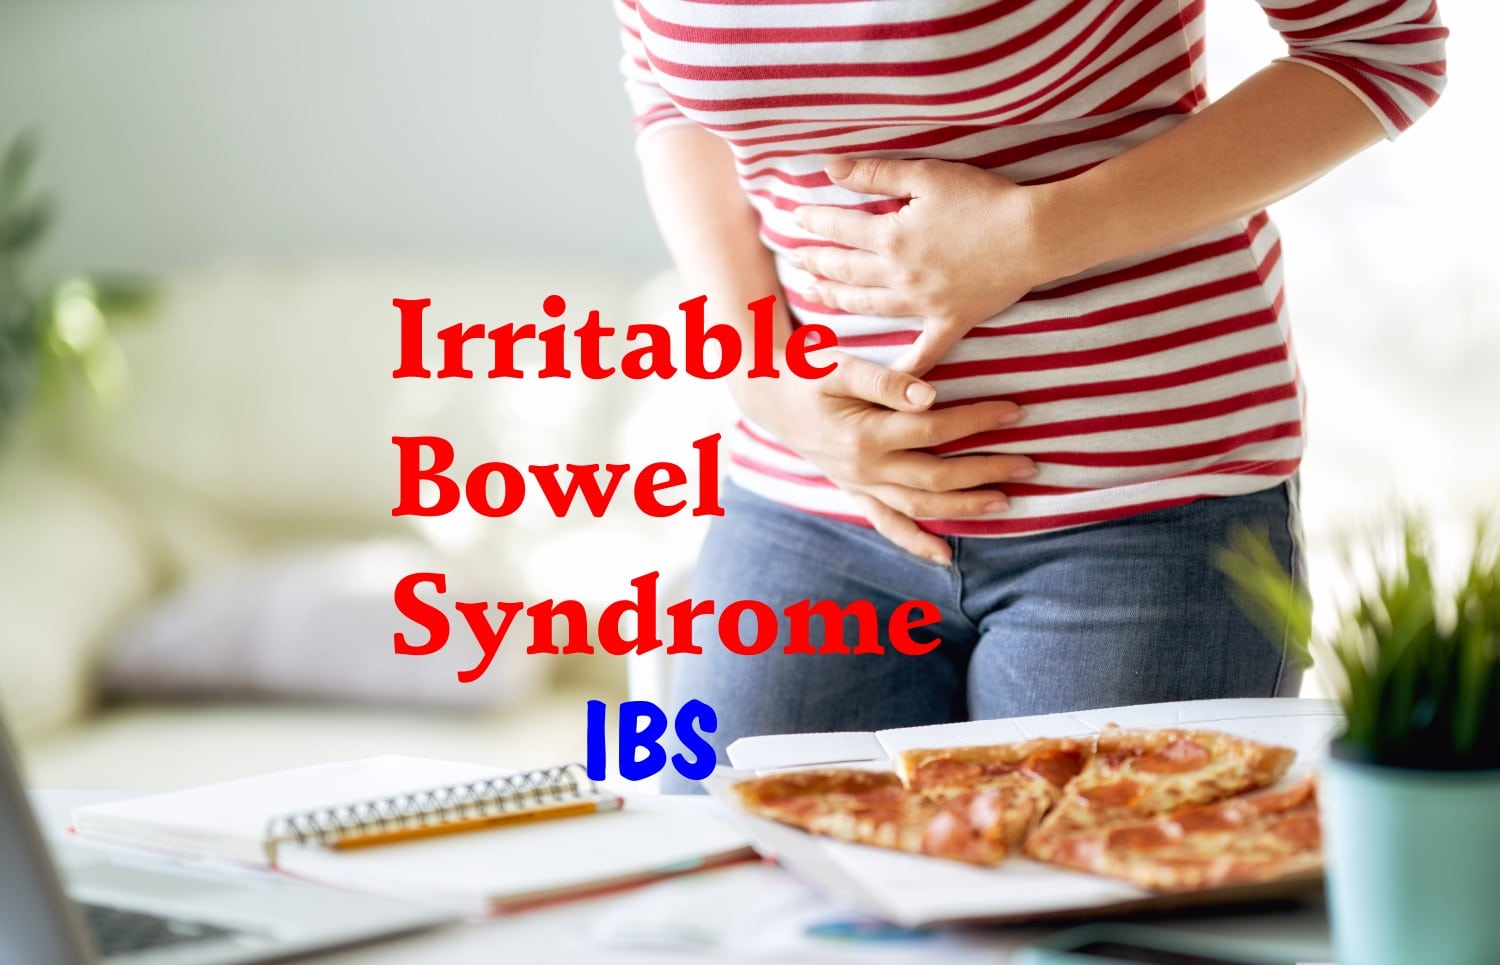 10 Home Remedies For Irritable Bowel Syndrome